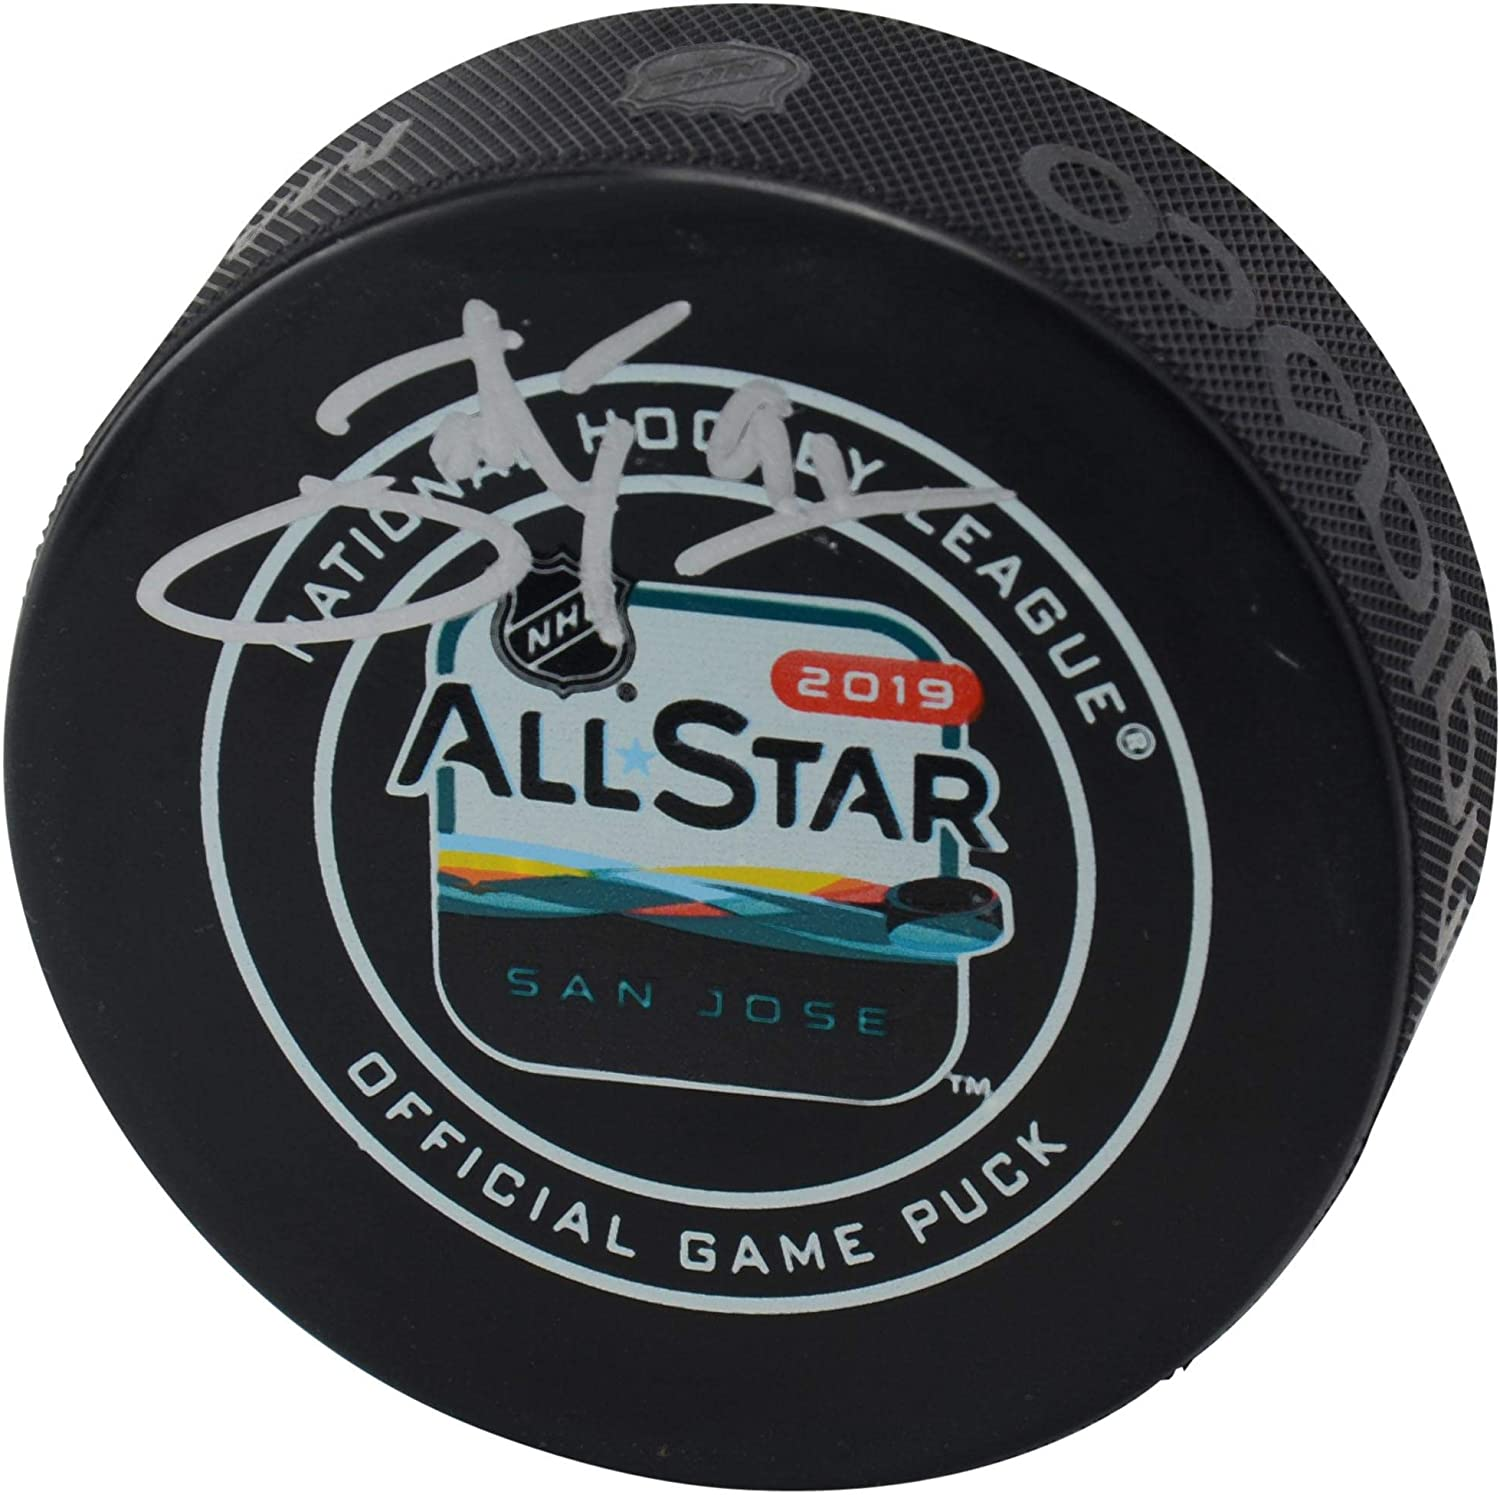 John Tavares Toronto Maple Leafs Autographed 2019 NHL All-Star Game Official Game Puck - Fanatics Authentic Certified